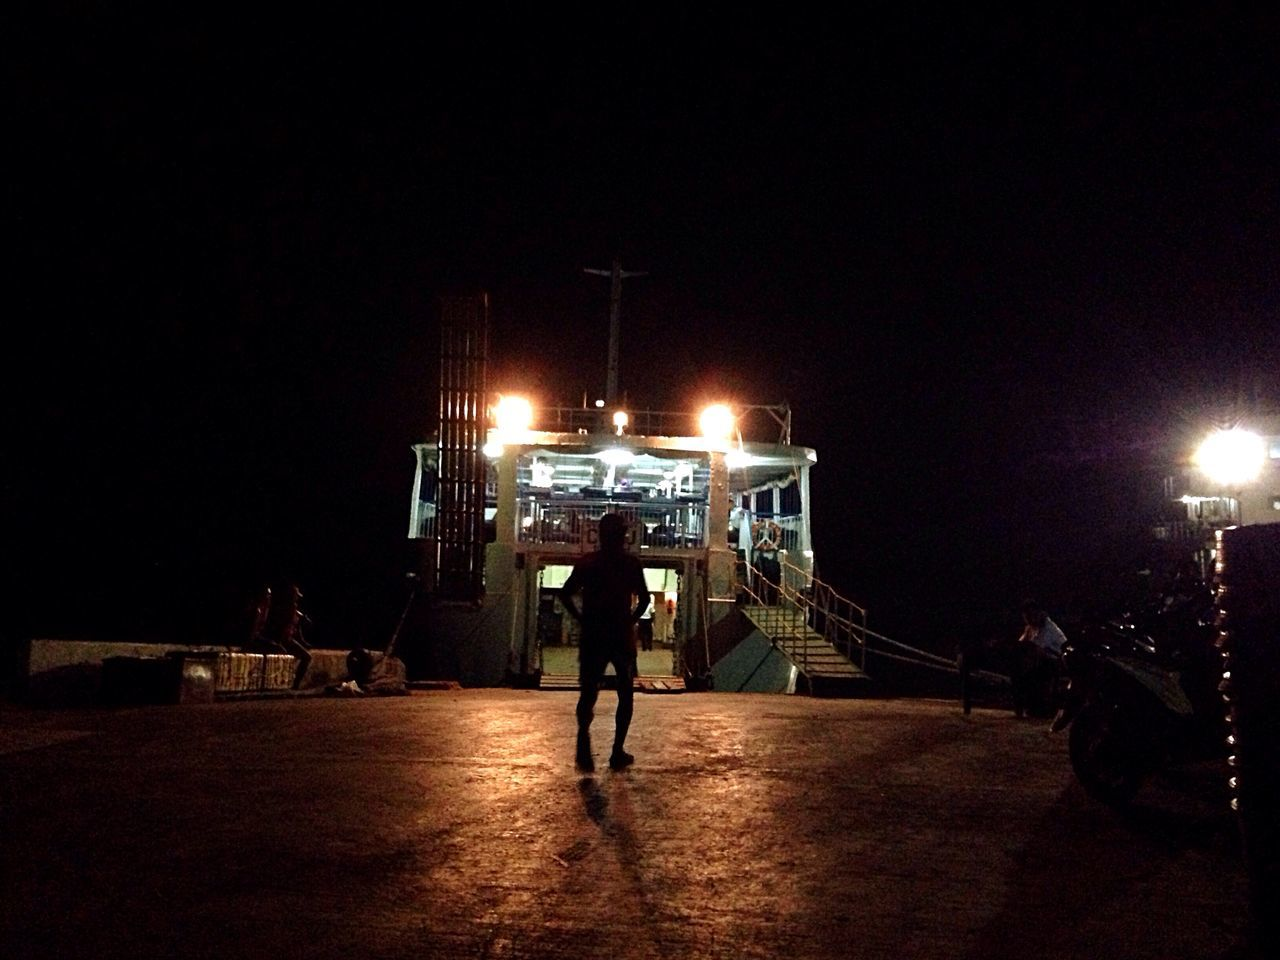 Follow the light to the ferry The Following Pierort] PierFerryboattGoing SailinggNight PhotographyyNight LightssSilhouetteeEyeem PhilippinessEyeEm NightscapeeEyeEm Night ShotssNight ShottMobile PhotographyyOlloclippThe Photojournalist - 2016 EyeEm Awardss